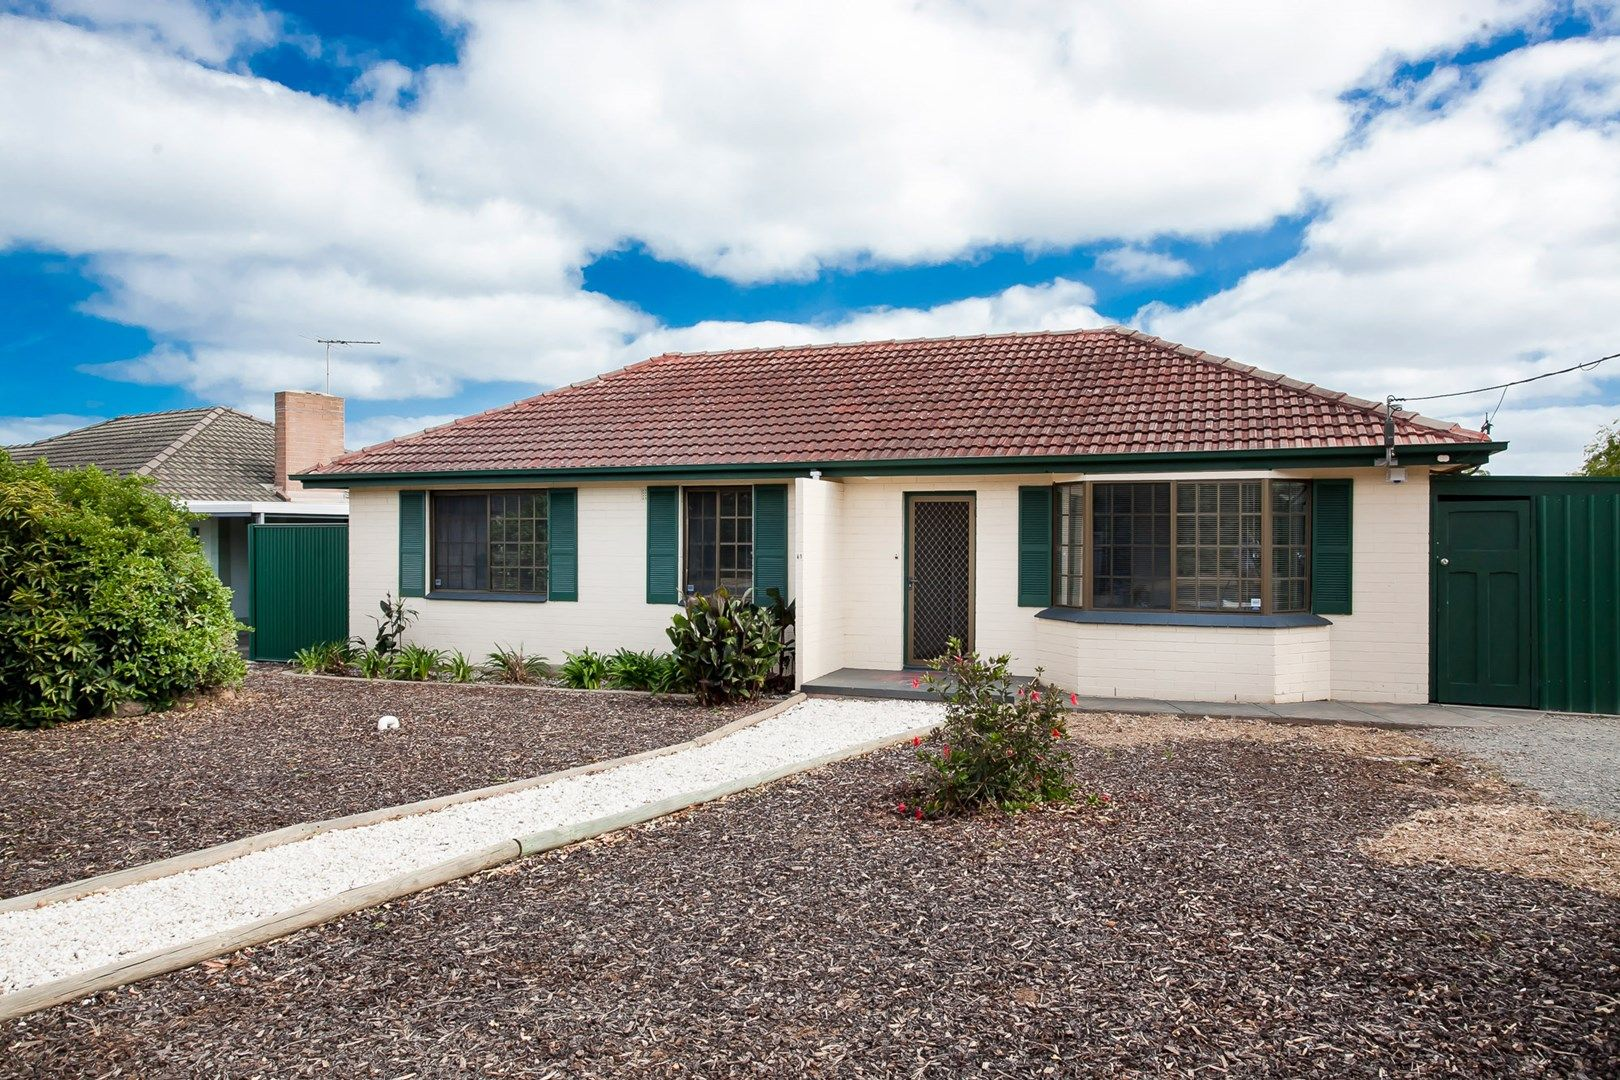 61 Wootoona Avenue, Christies Beach SA 5165, Image 0